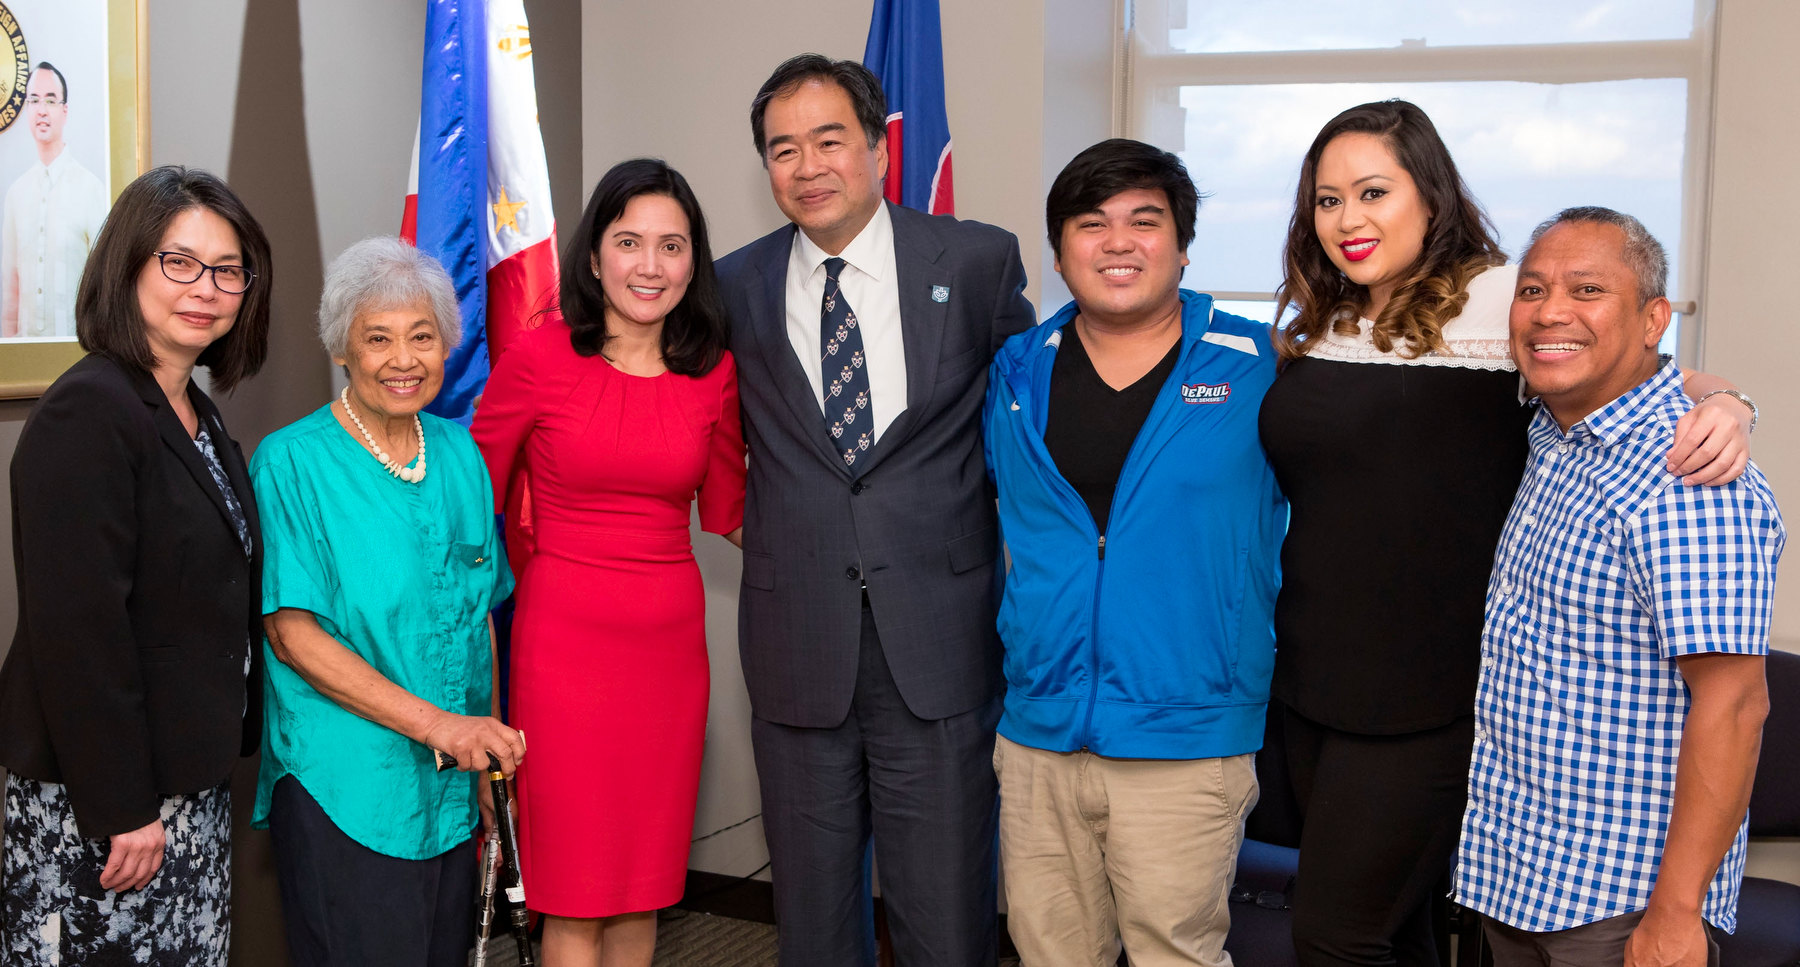 FILIPINO-AMERICAN COMMUNITY WELCOMES DR. AND MRS. ESTEBAN